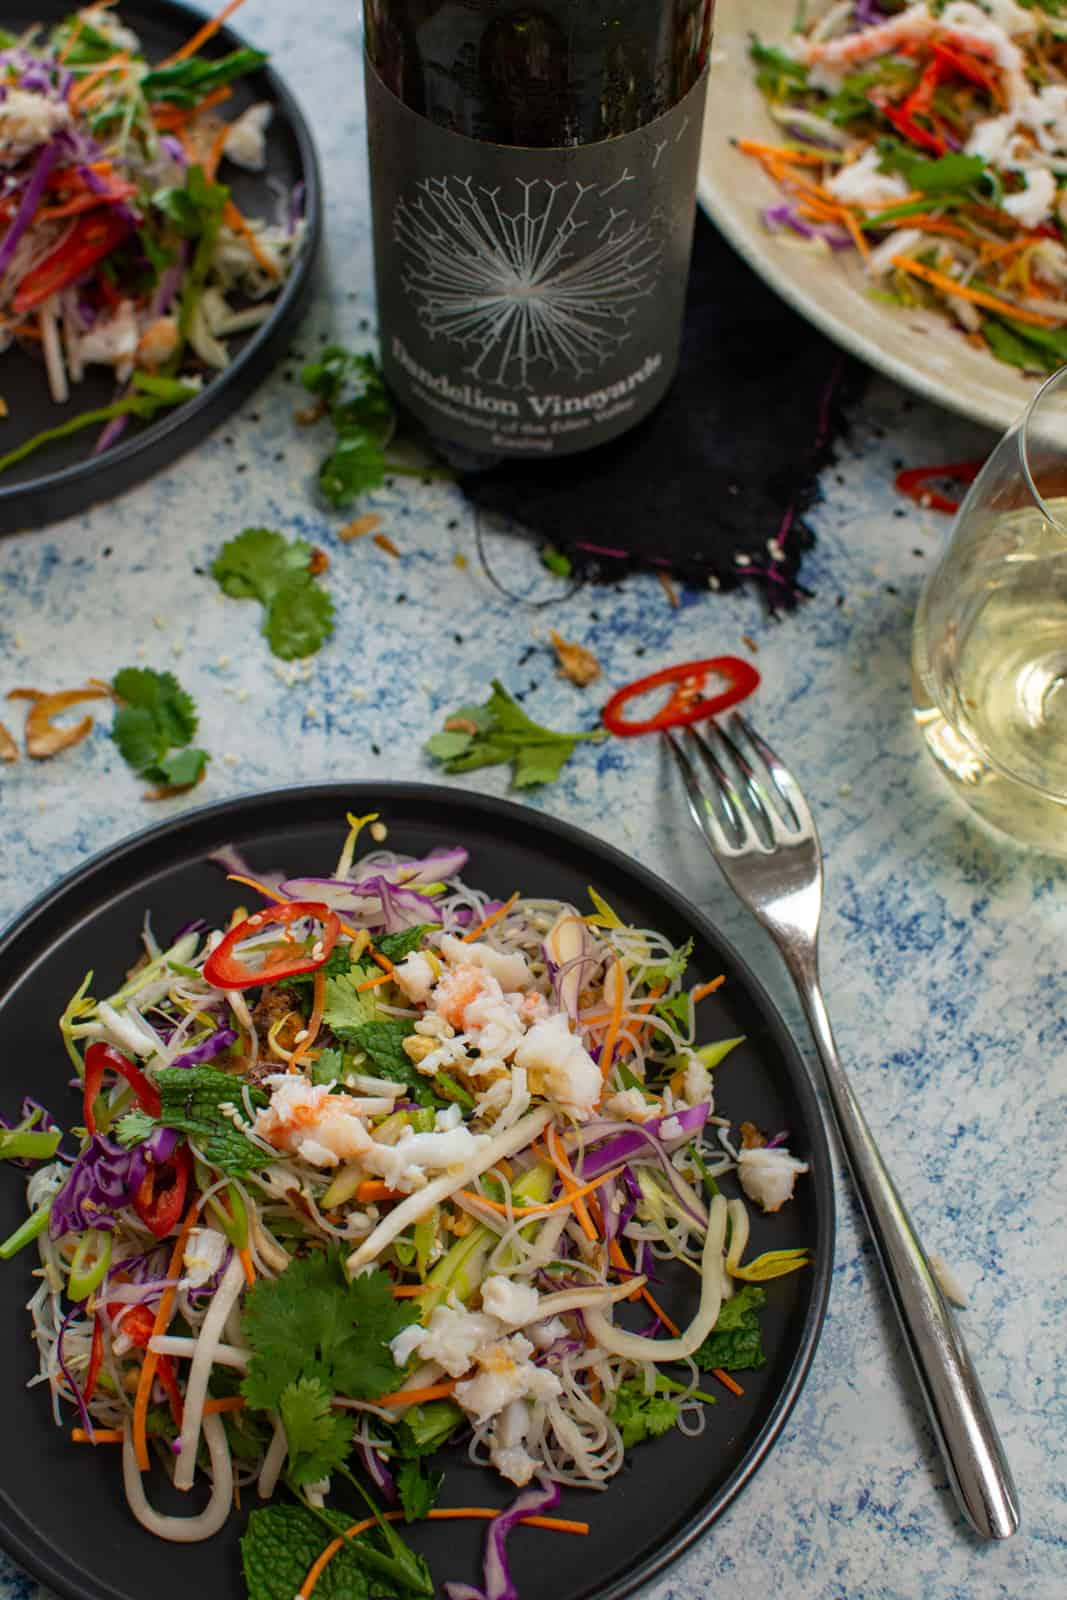 spicy crab salad on a black plate with a fork and a bottle of dandelion riesling on table